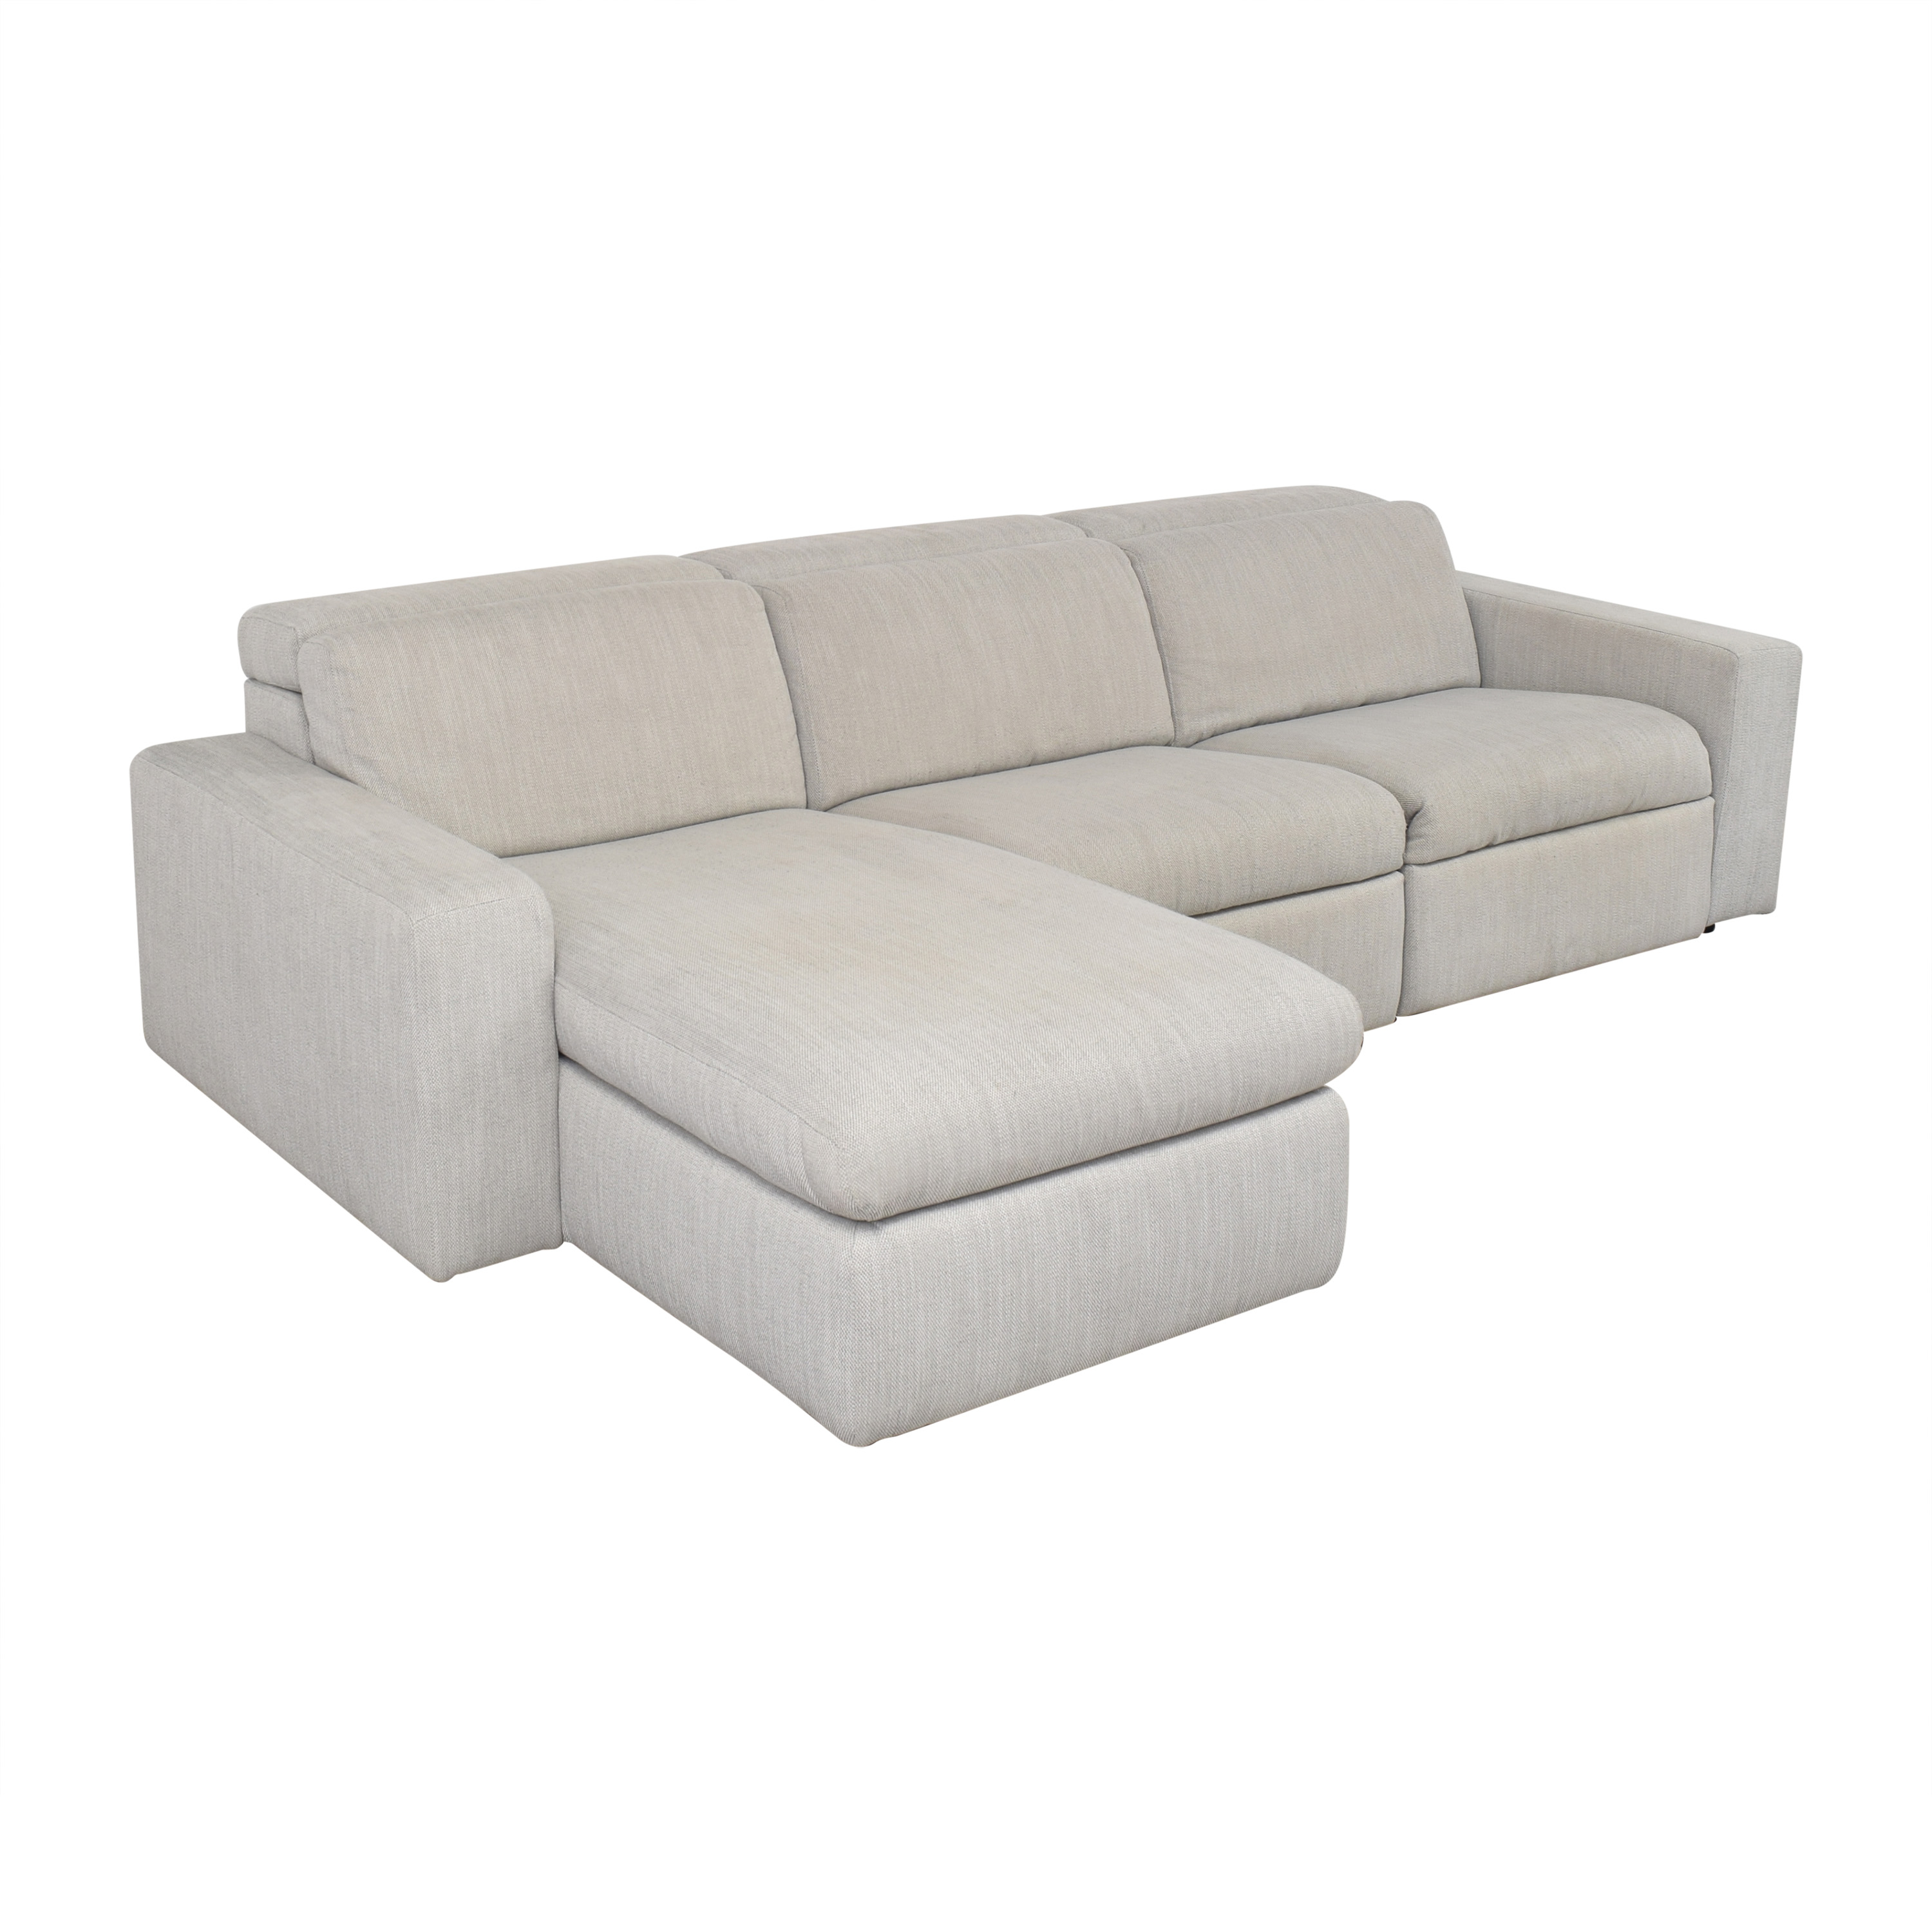 West Elm West Elm Enzo Reclining Chaise Sectional with Storage nj